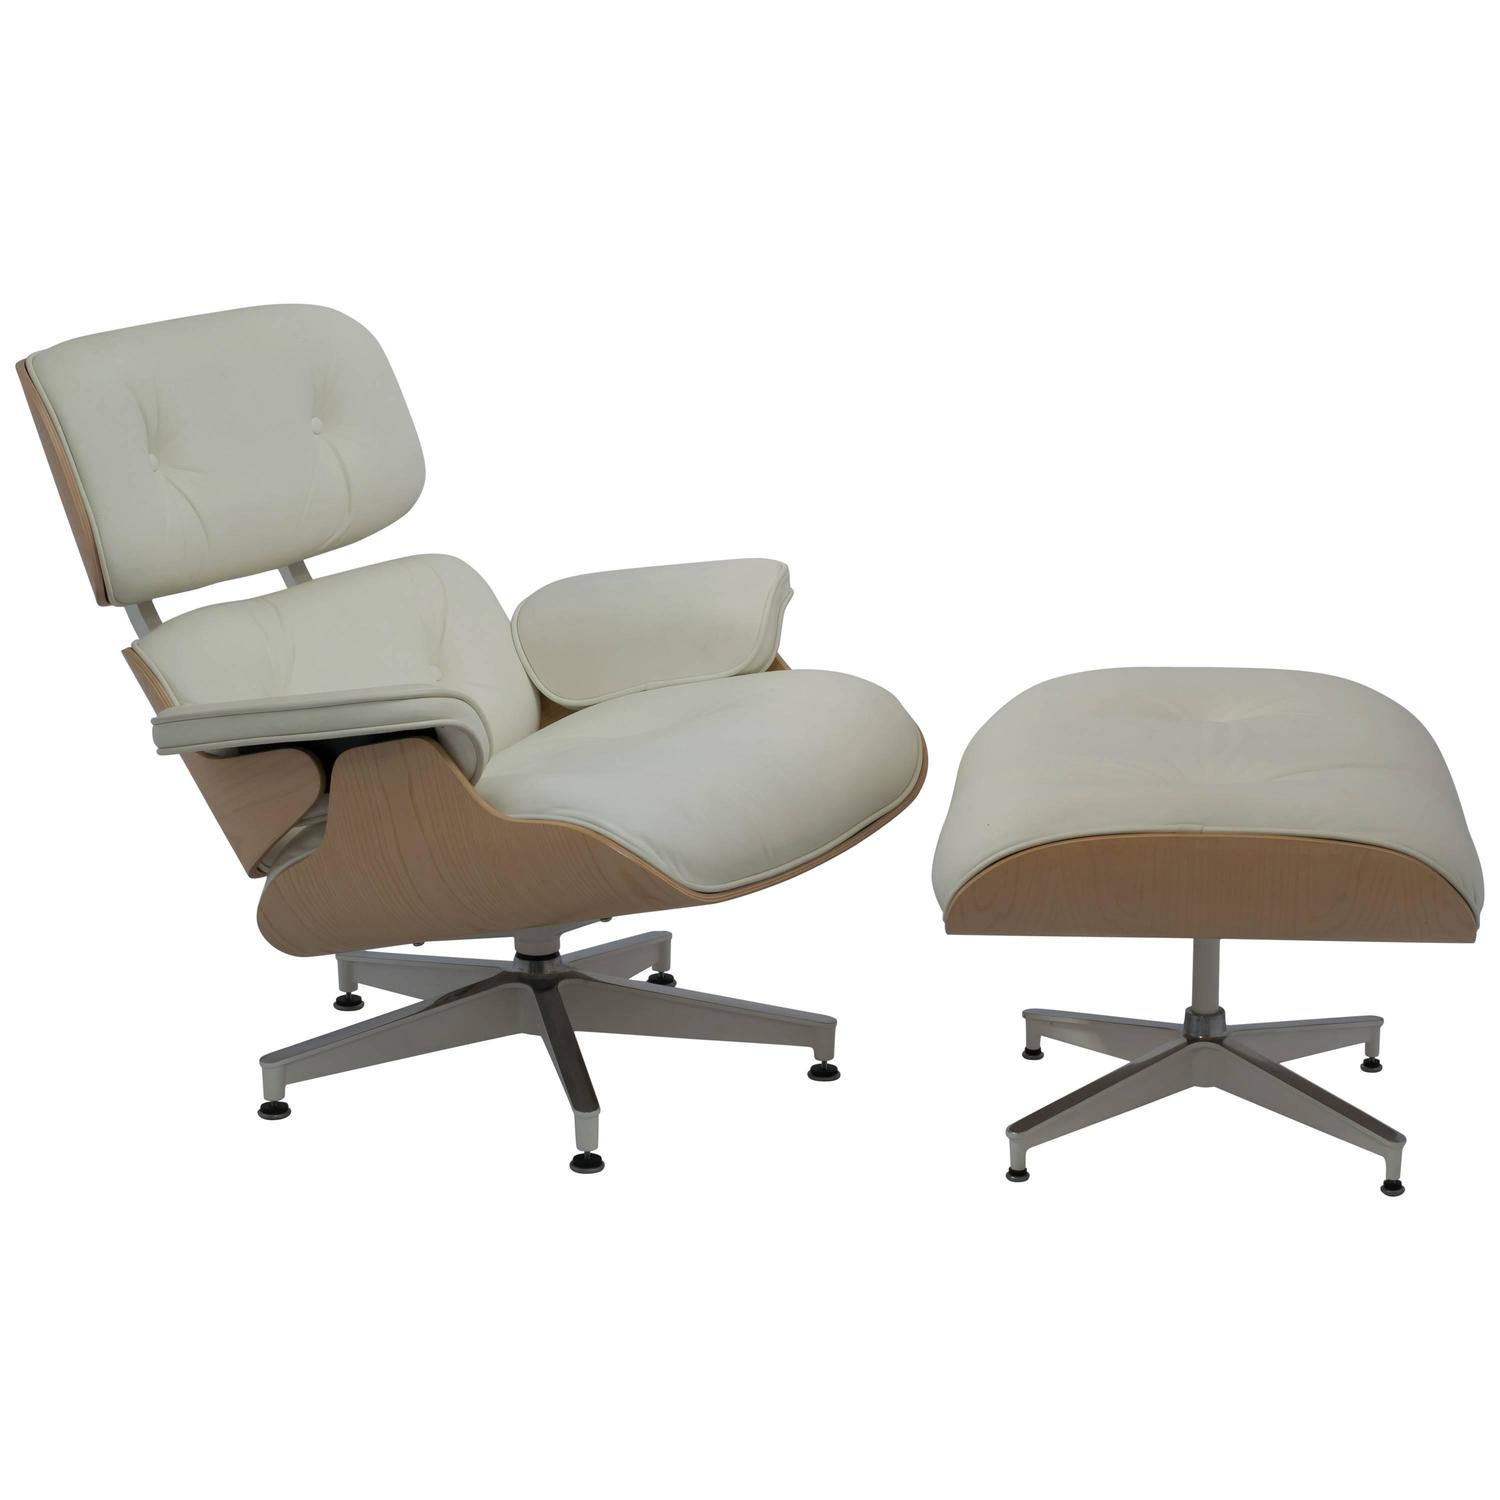 ivory leather office chair swing egg indoor eames lounge and ottoman 670 671 in white ash